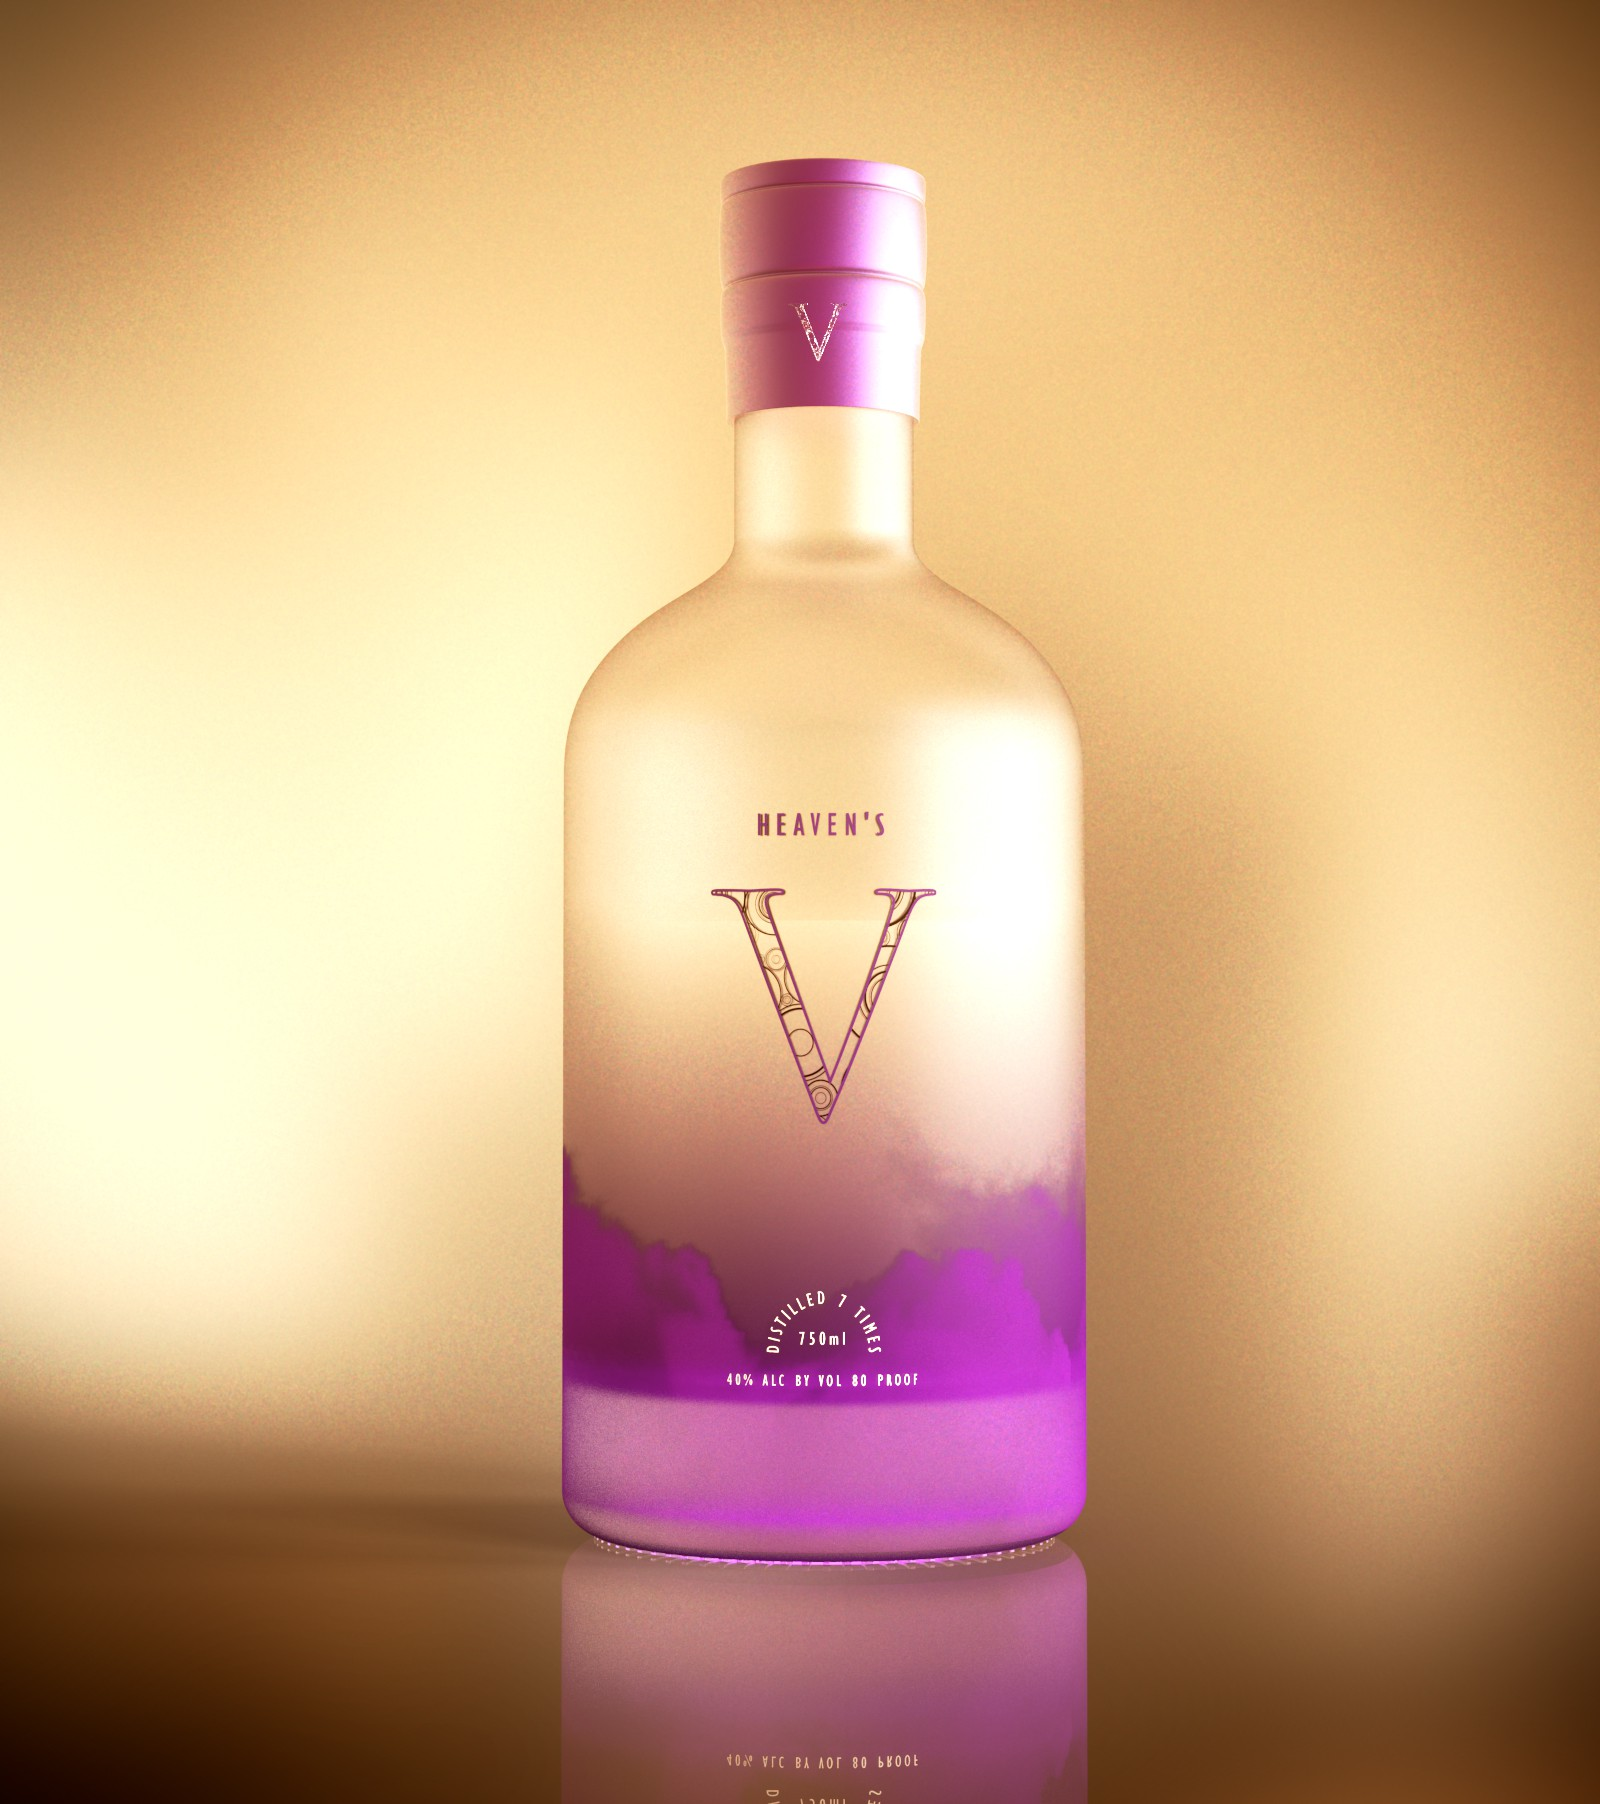 Heaven's V vodka bottle and logo design